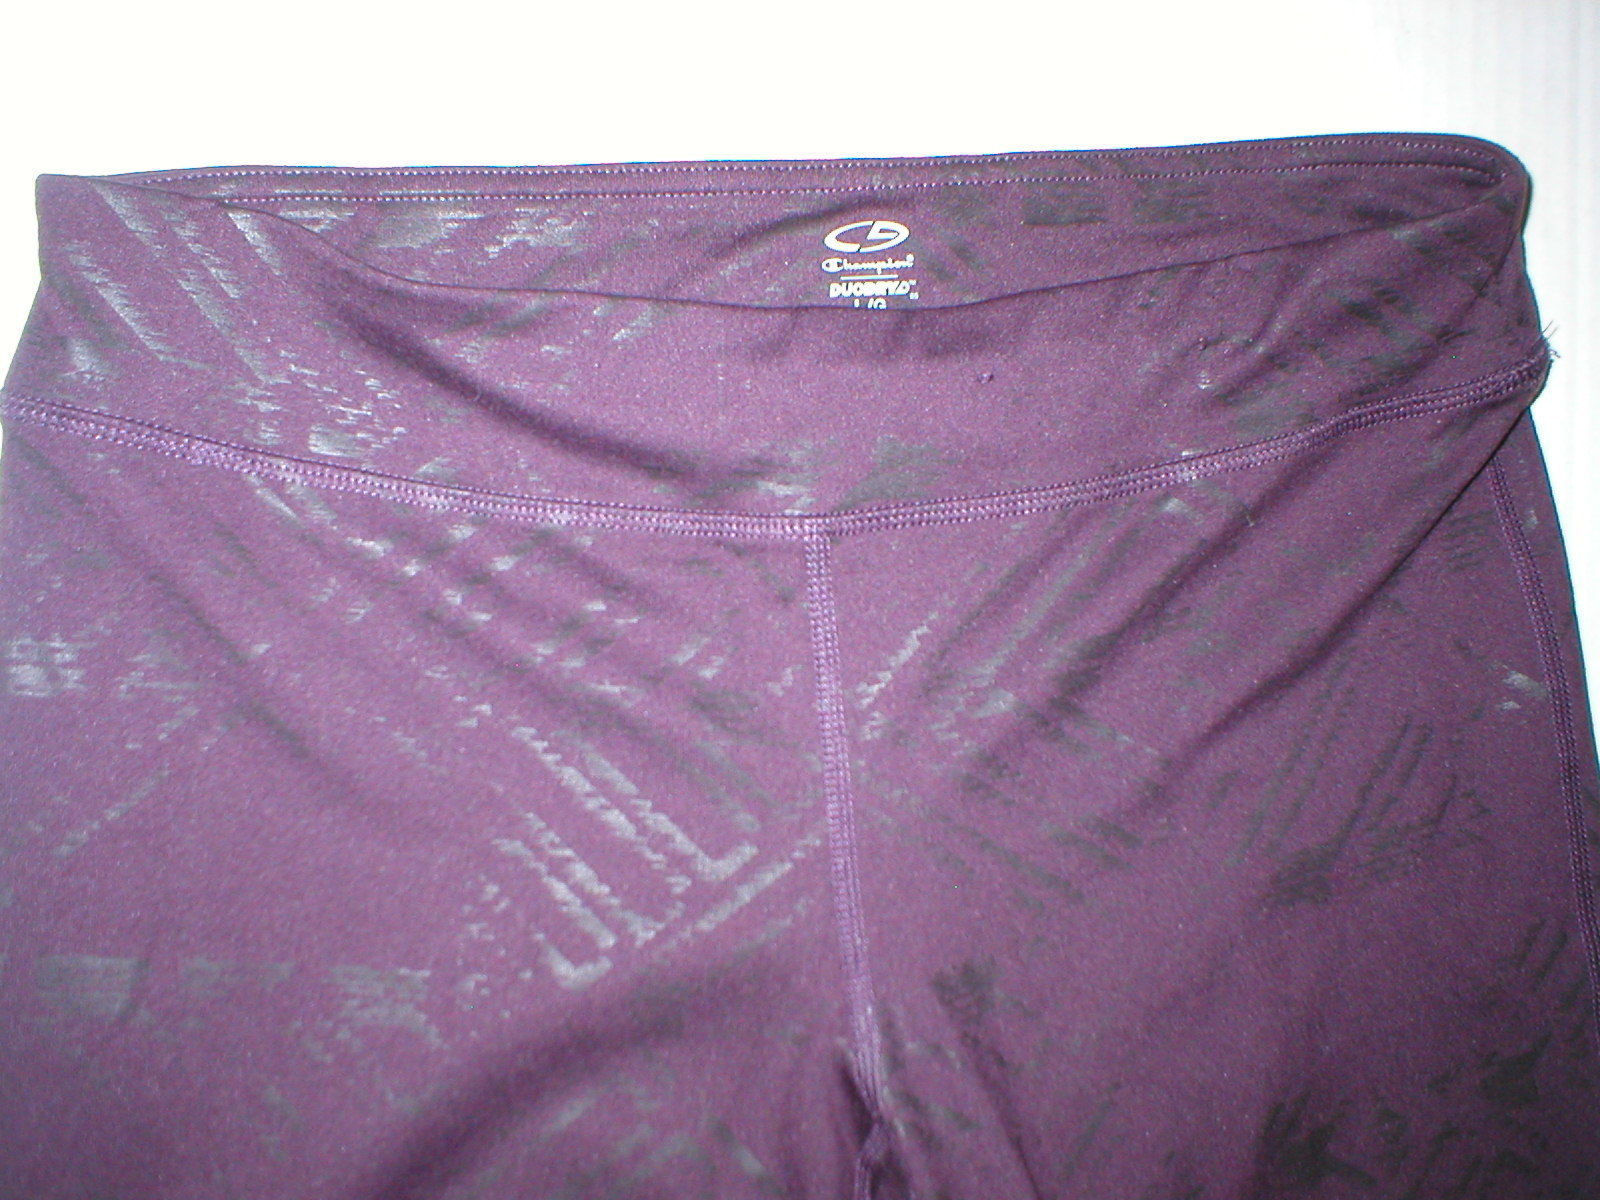 Womens Leggings C9 Champion Pants L Run Pilates Yoga Dark Purple Black Foil image 2